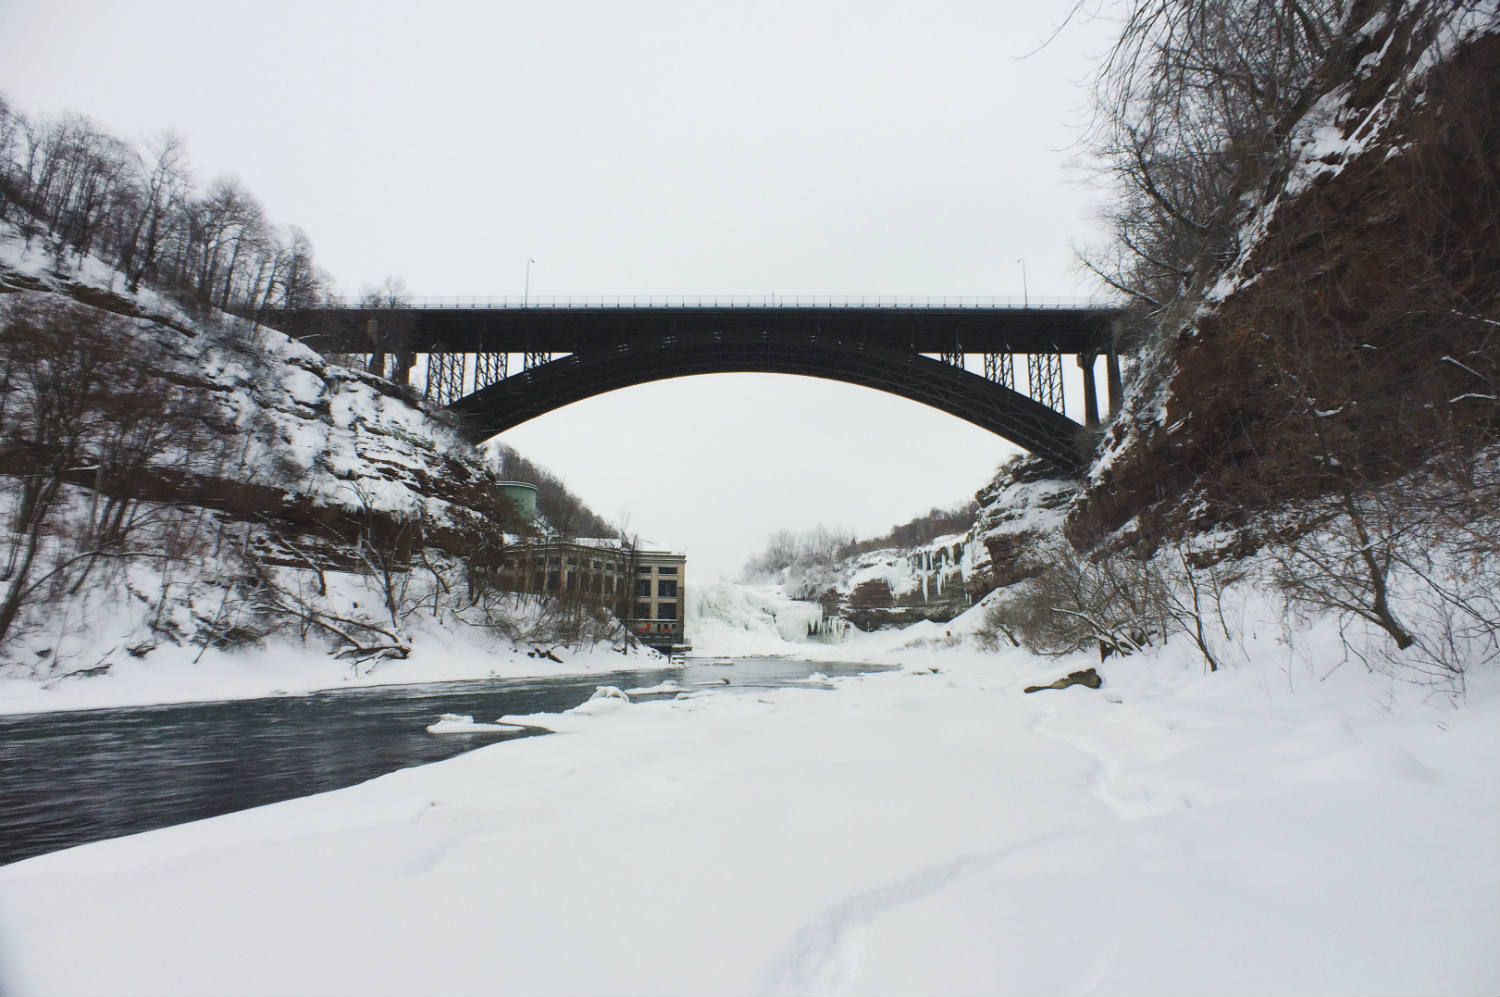 Genesee River and Lower Falls Gorge in Winter; Rochester, NY